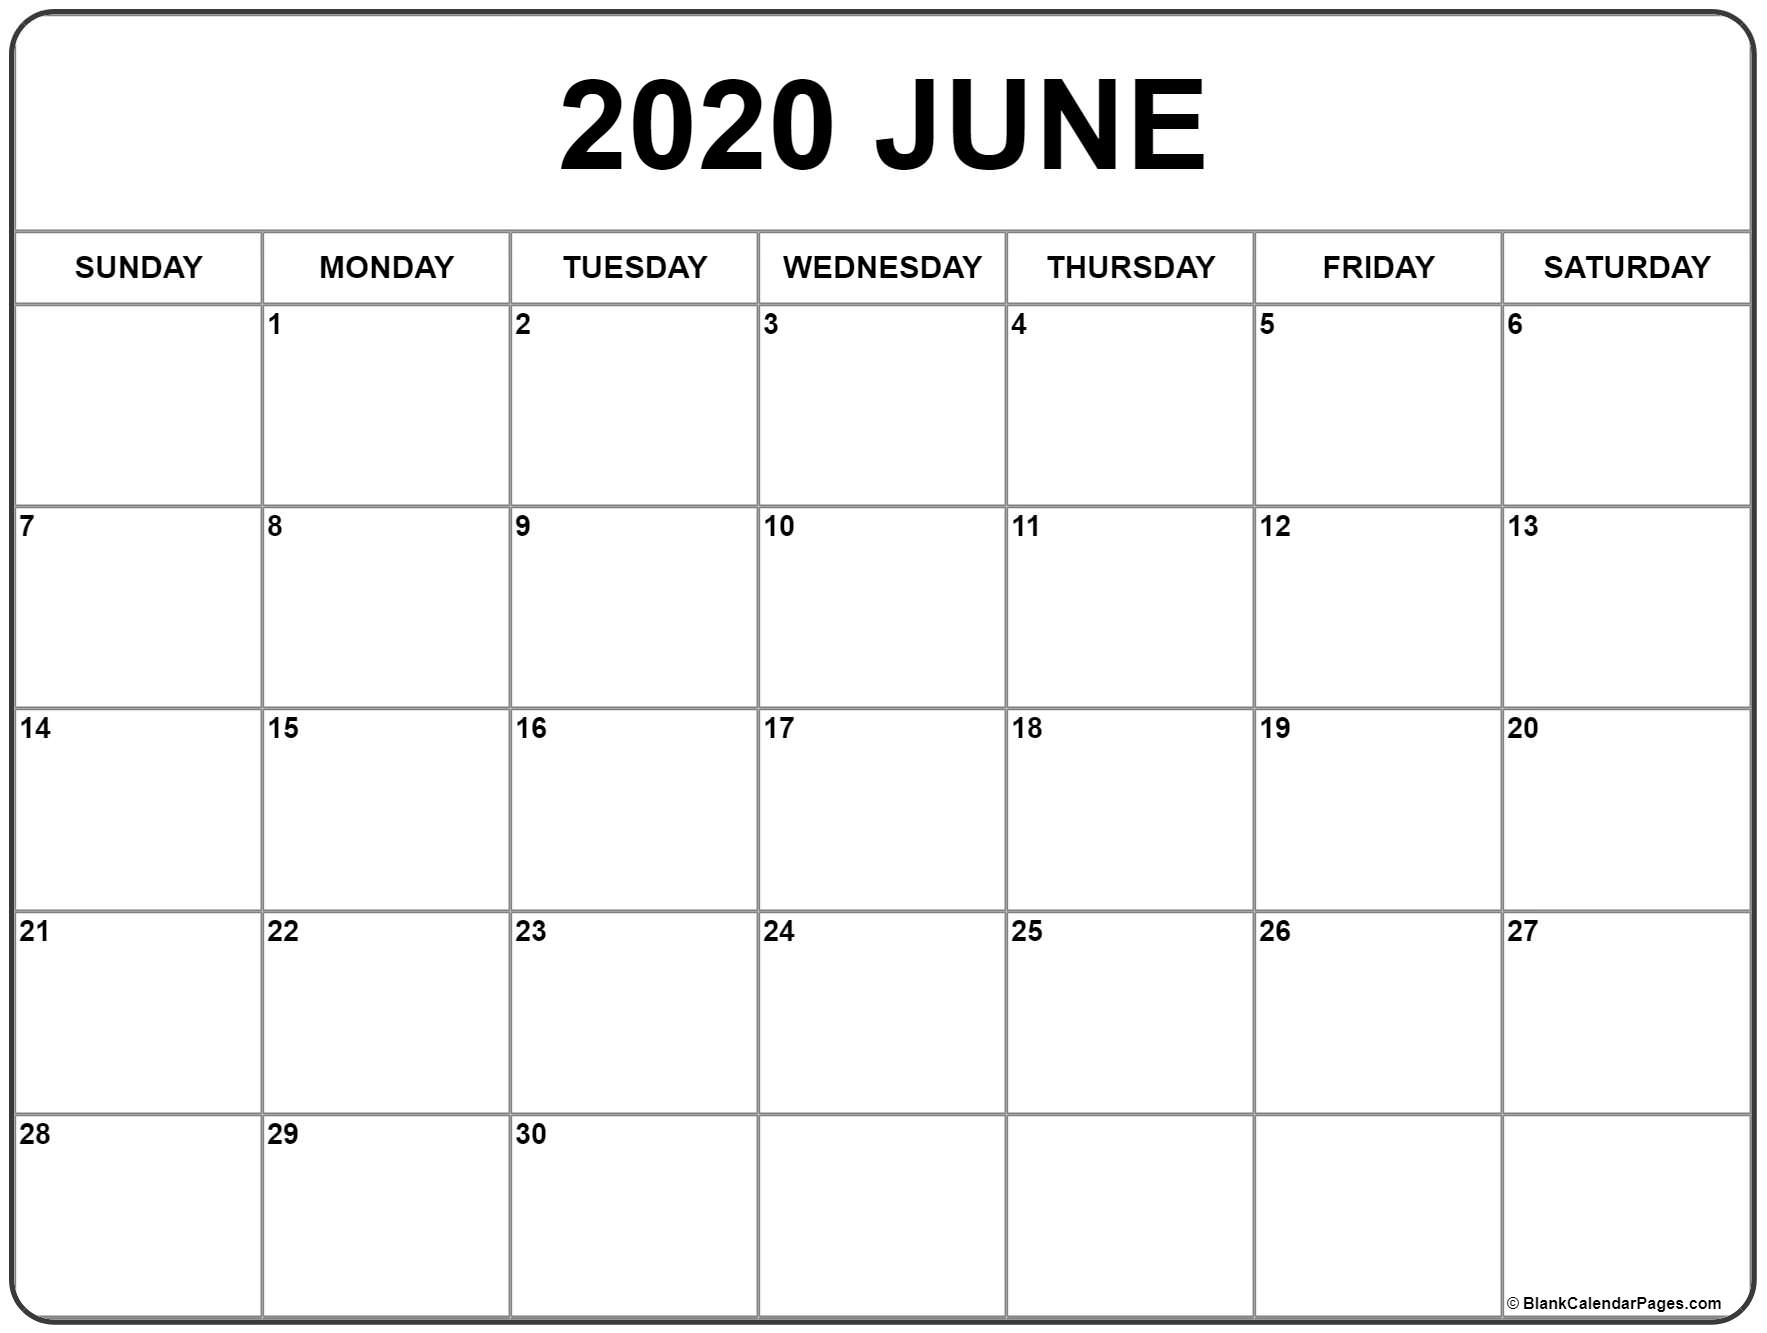 June 2020 Calendar | Free Printable Monthly Calendars in Pretty Printable Calendar 2020 Without Download